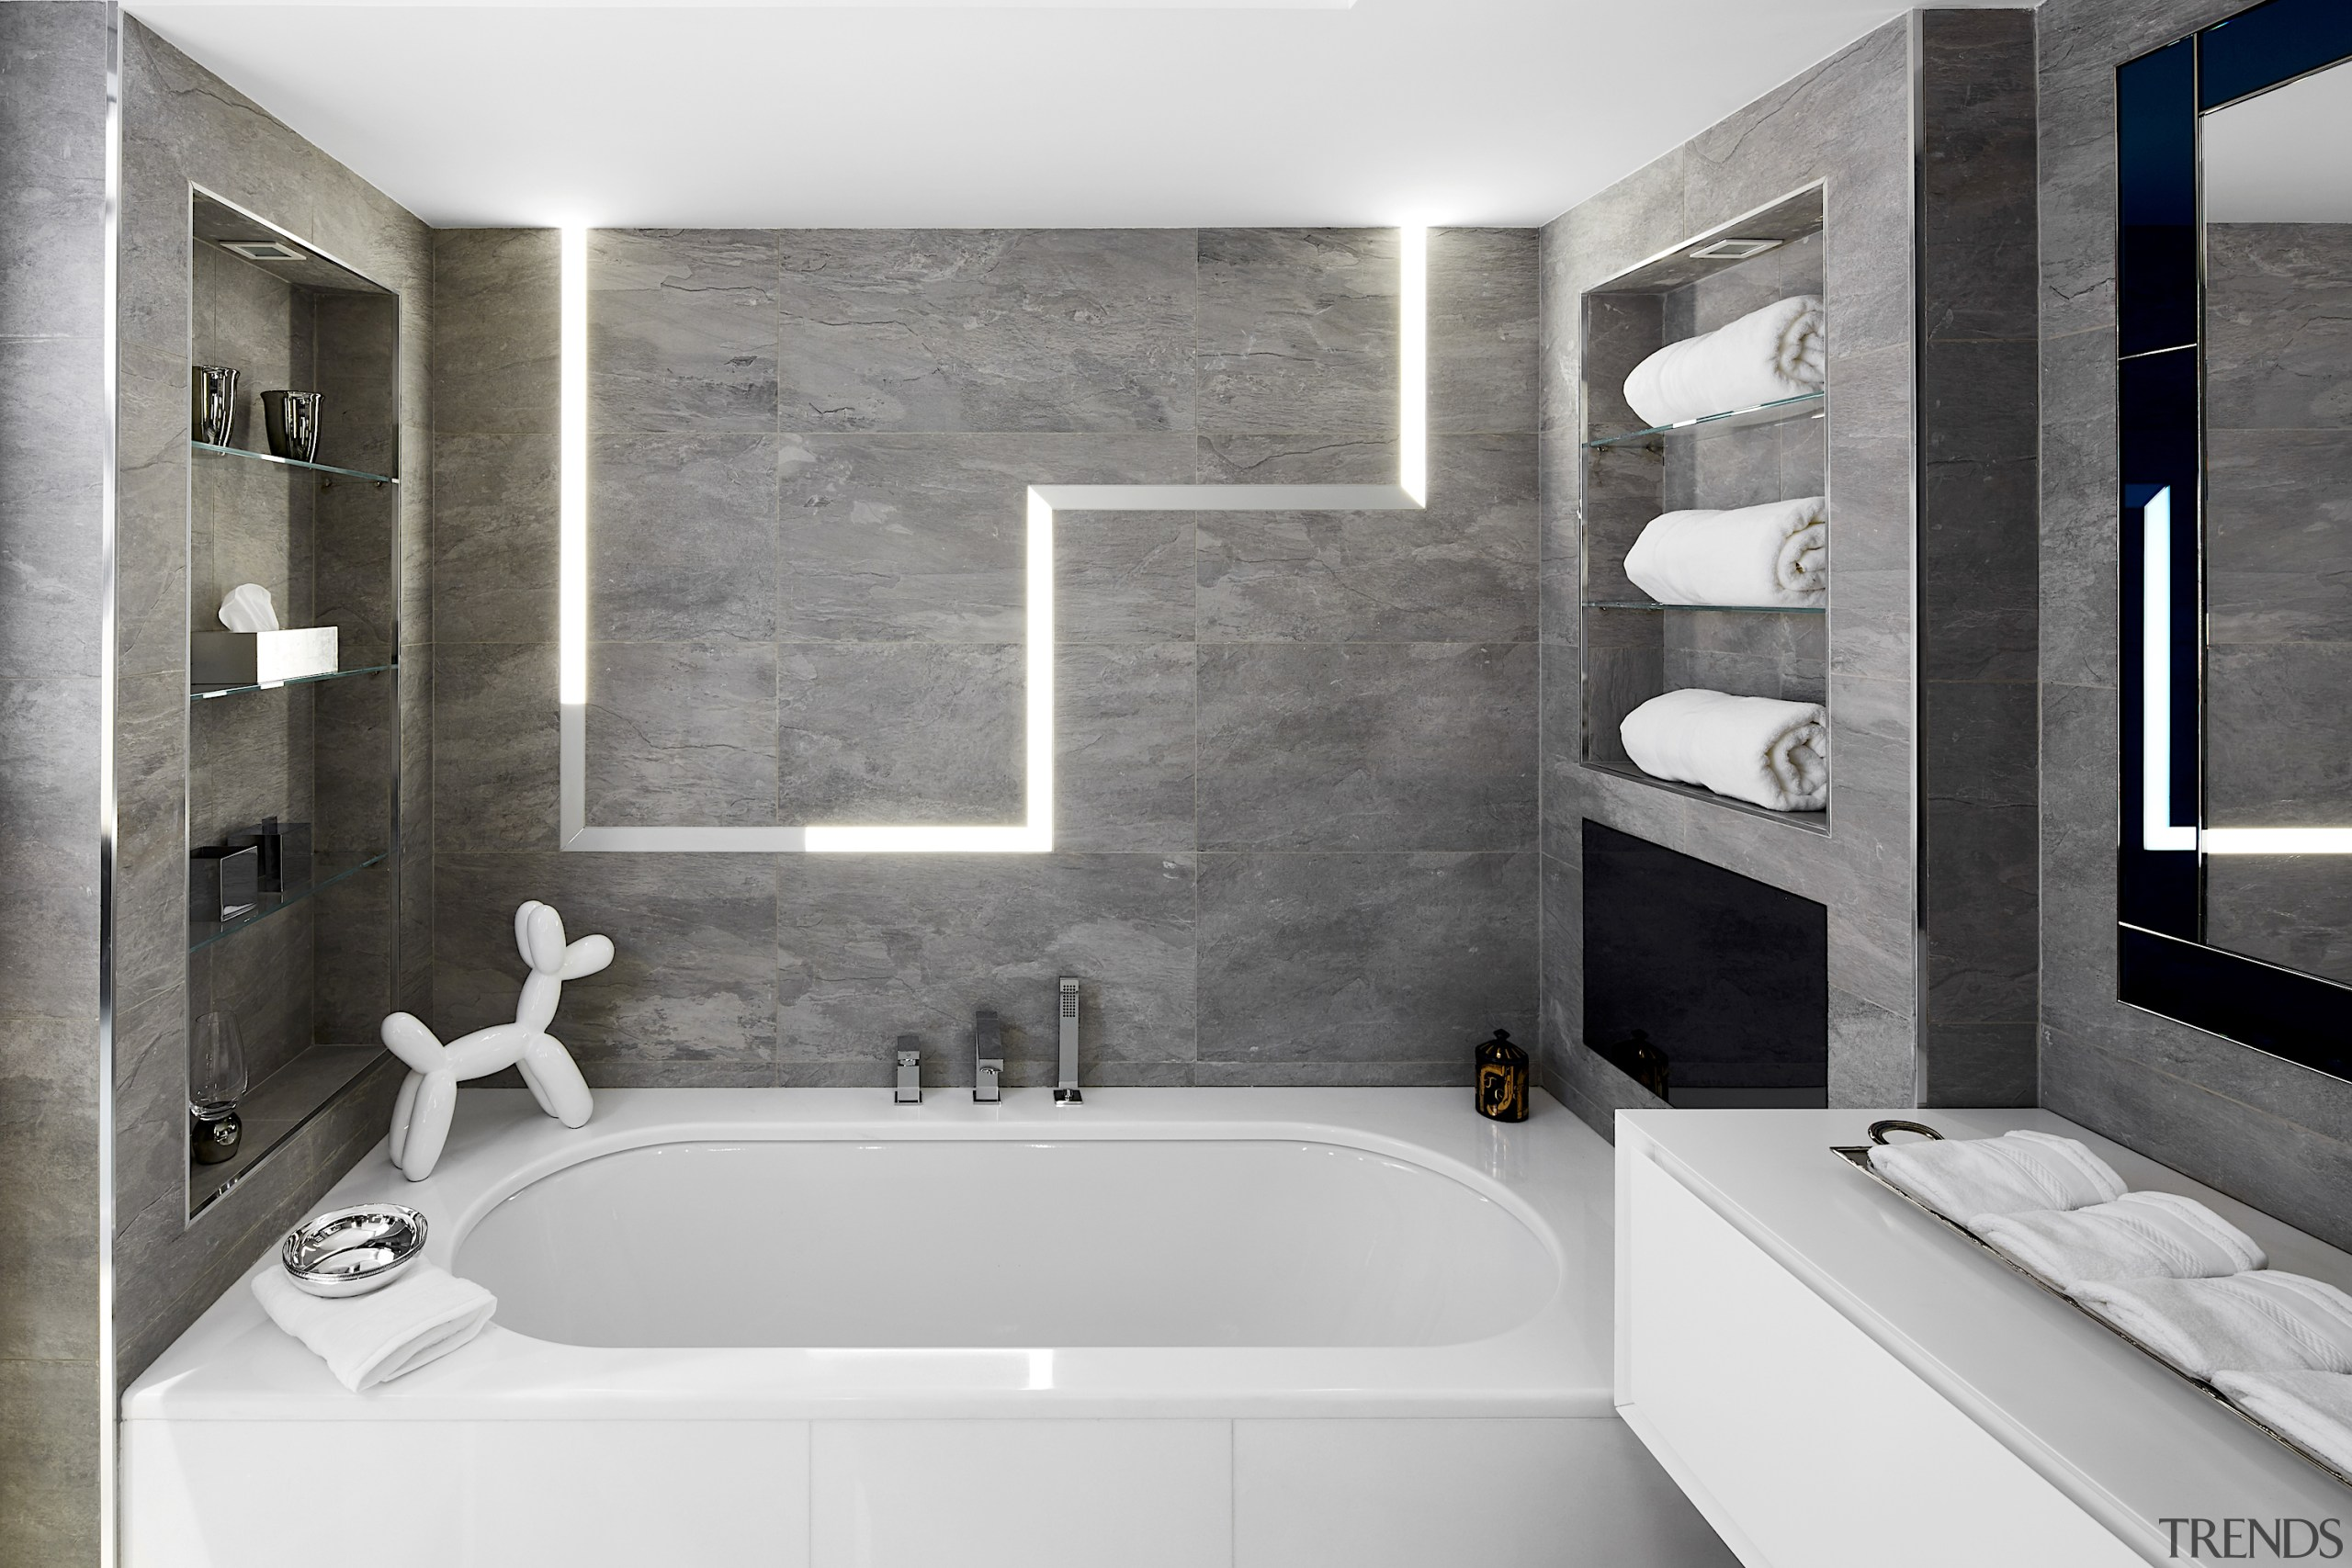 For this bathroom, a slate wall with integrated gray, white